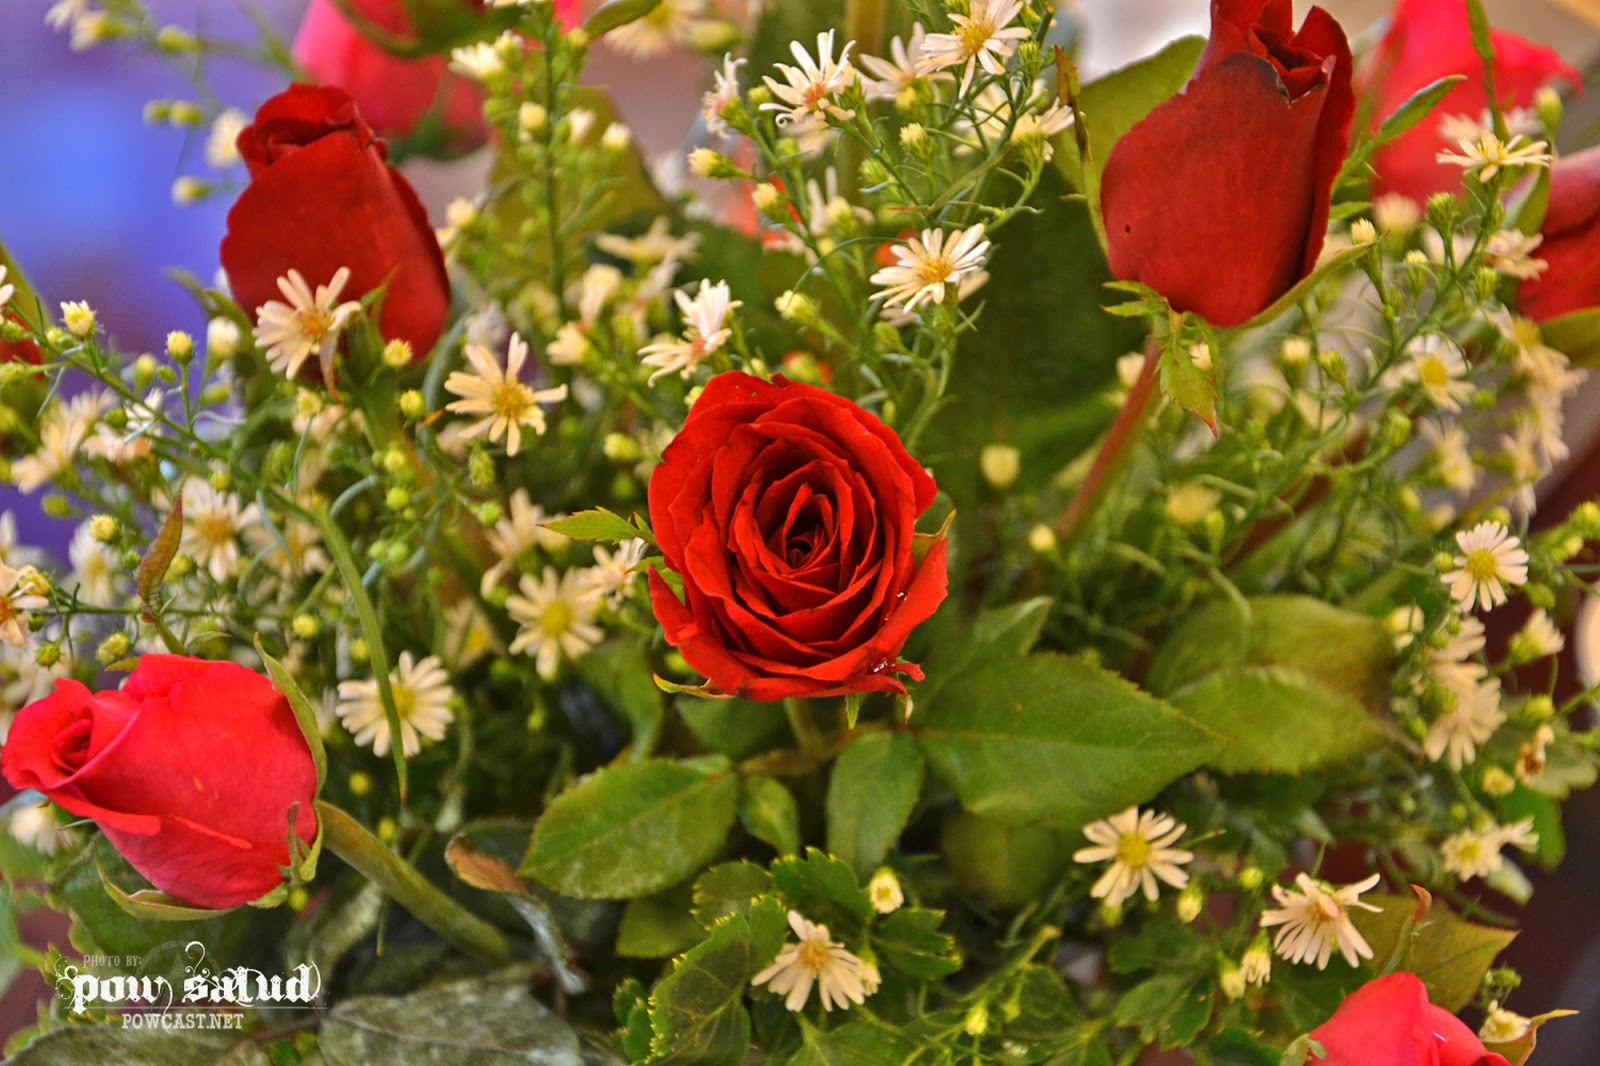 Wedding Flowers In The Philippines : Wedding photos pow salud official website